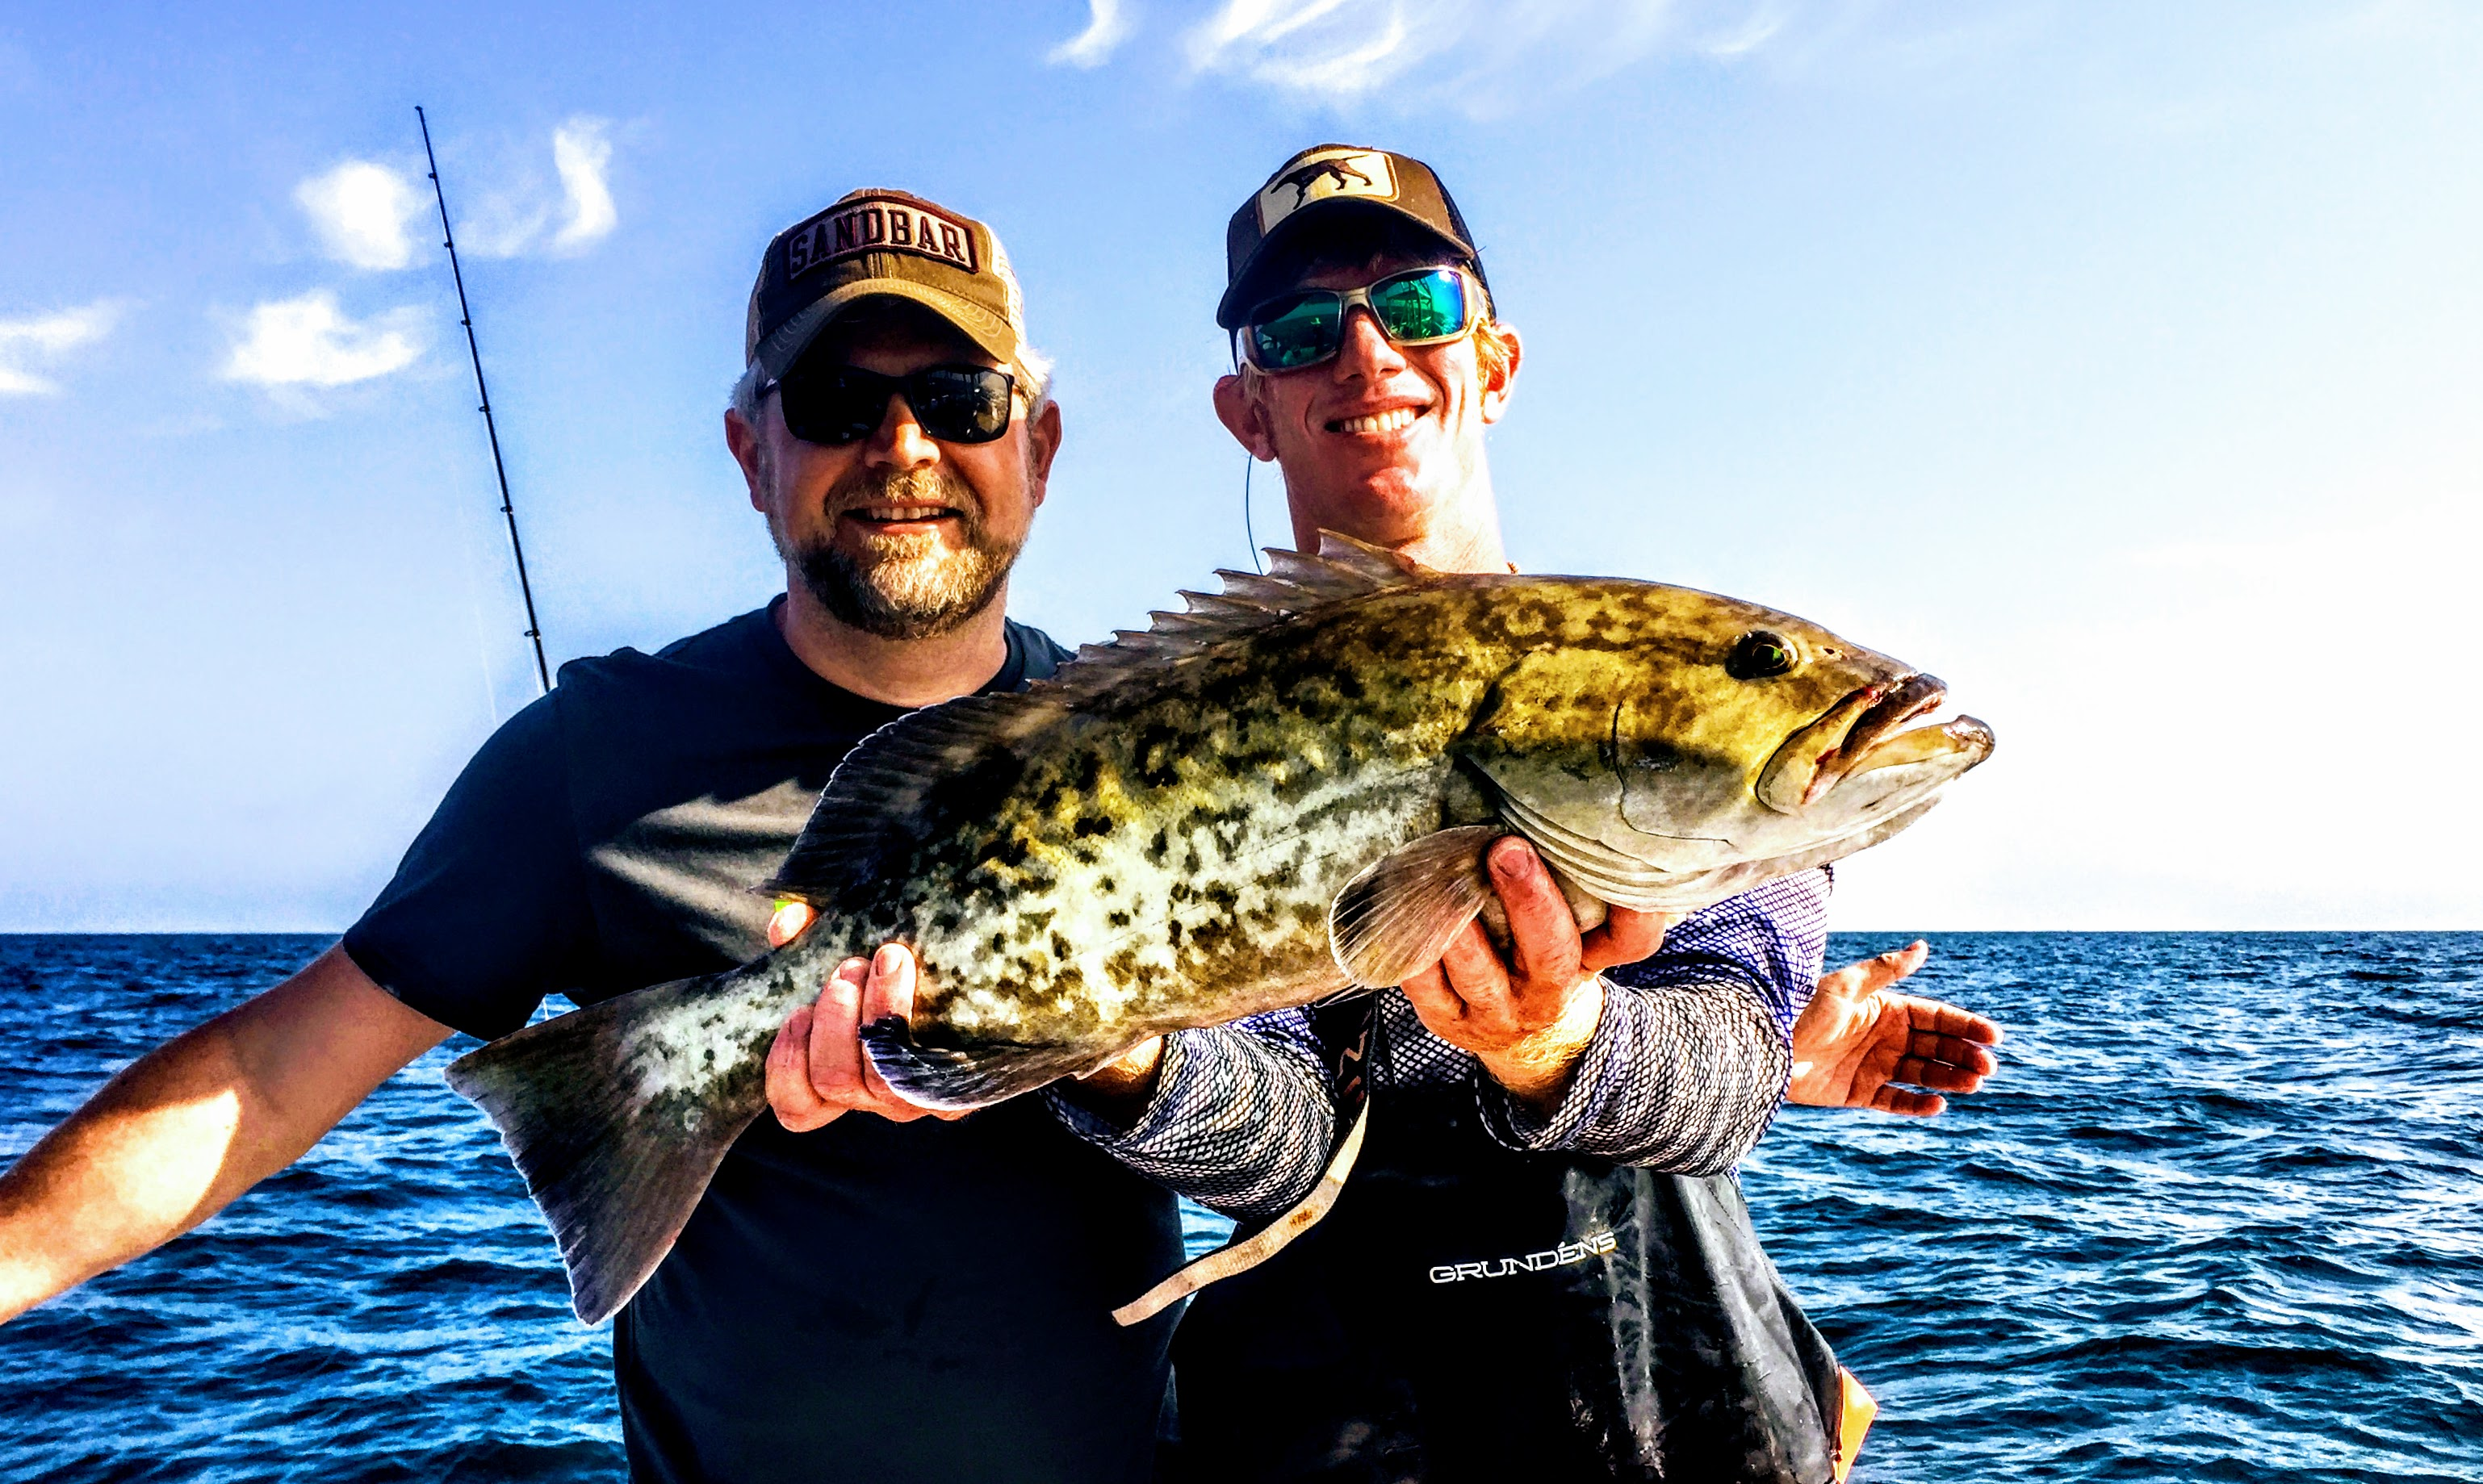 Brian Peacock with Bay to Bay Fishing Charters